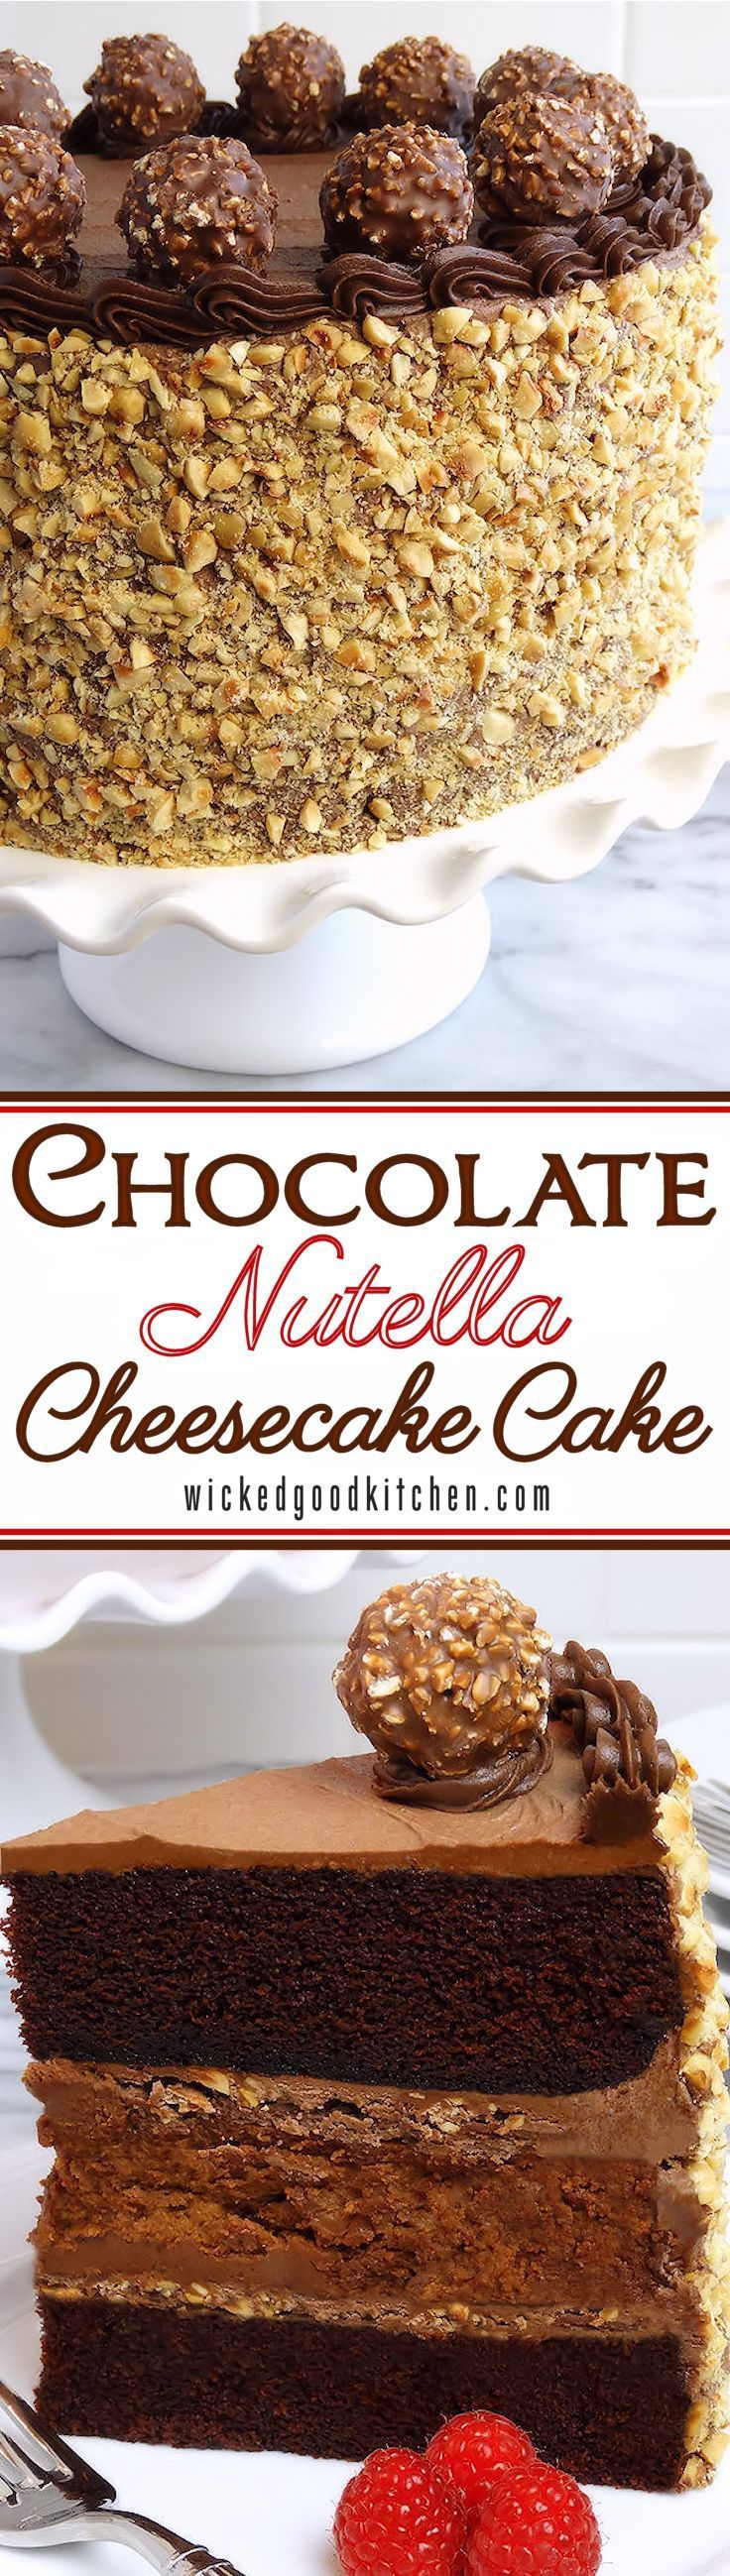 best food images on pinterest gift ideas creative gifts and